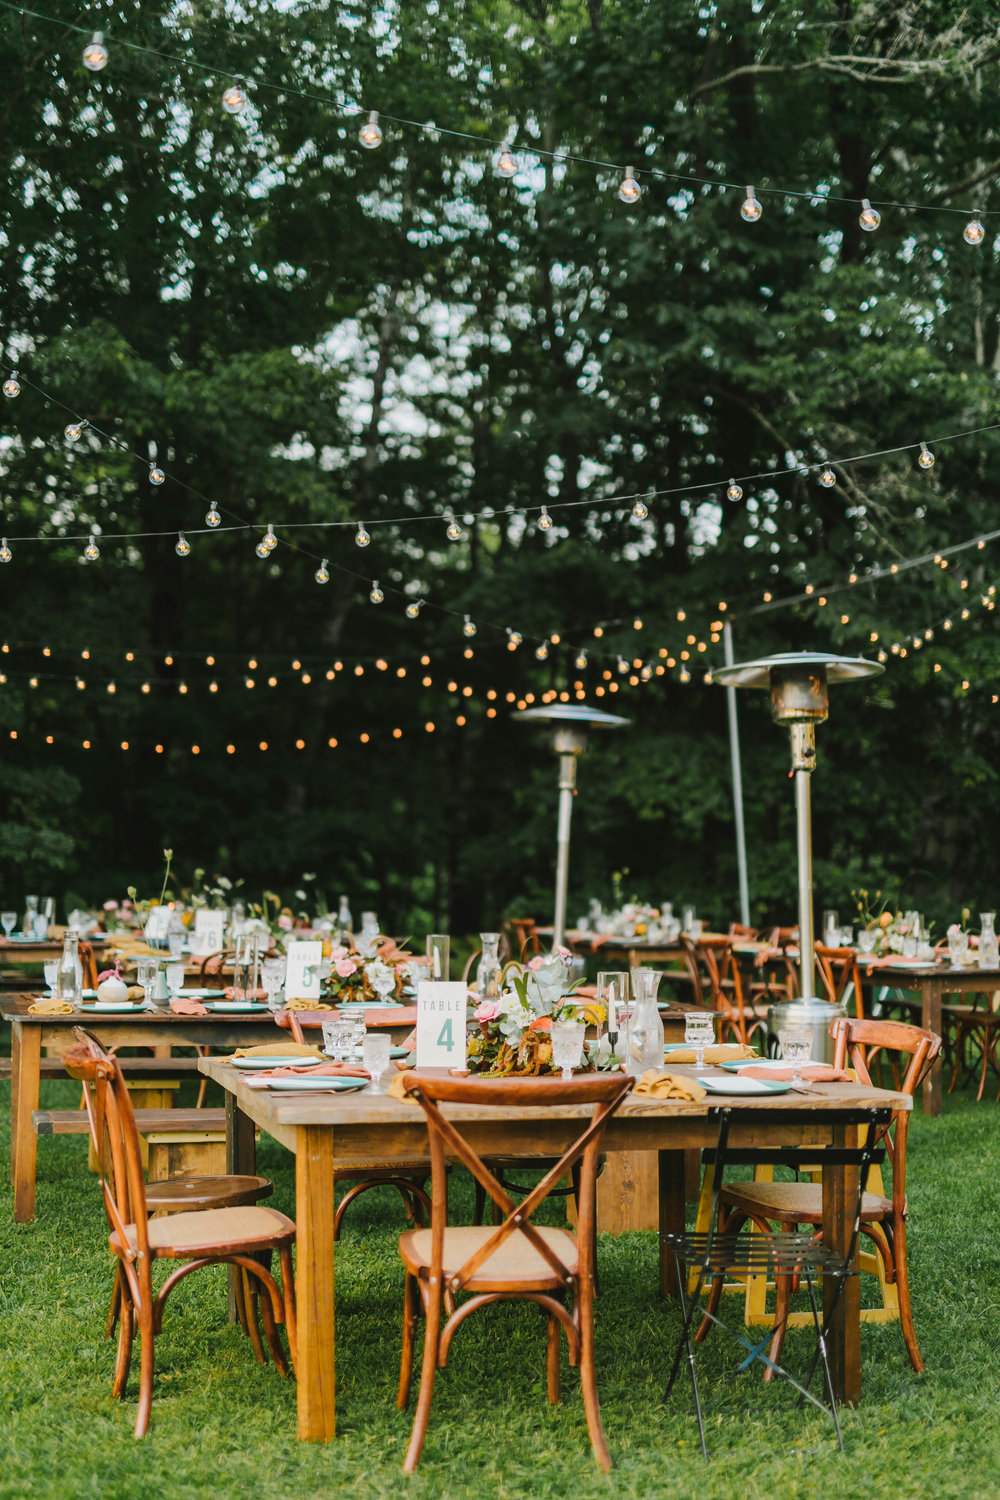 Vermont back yard farm wedding West winds farm vingtage casual unconventional - Emily Tebbetts Photography-20.jpg